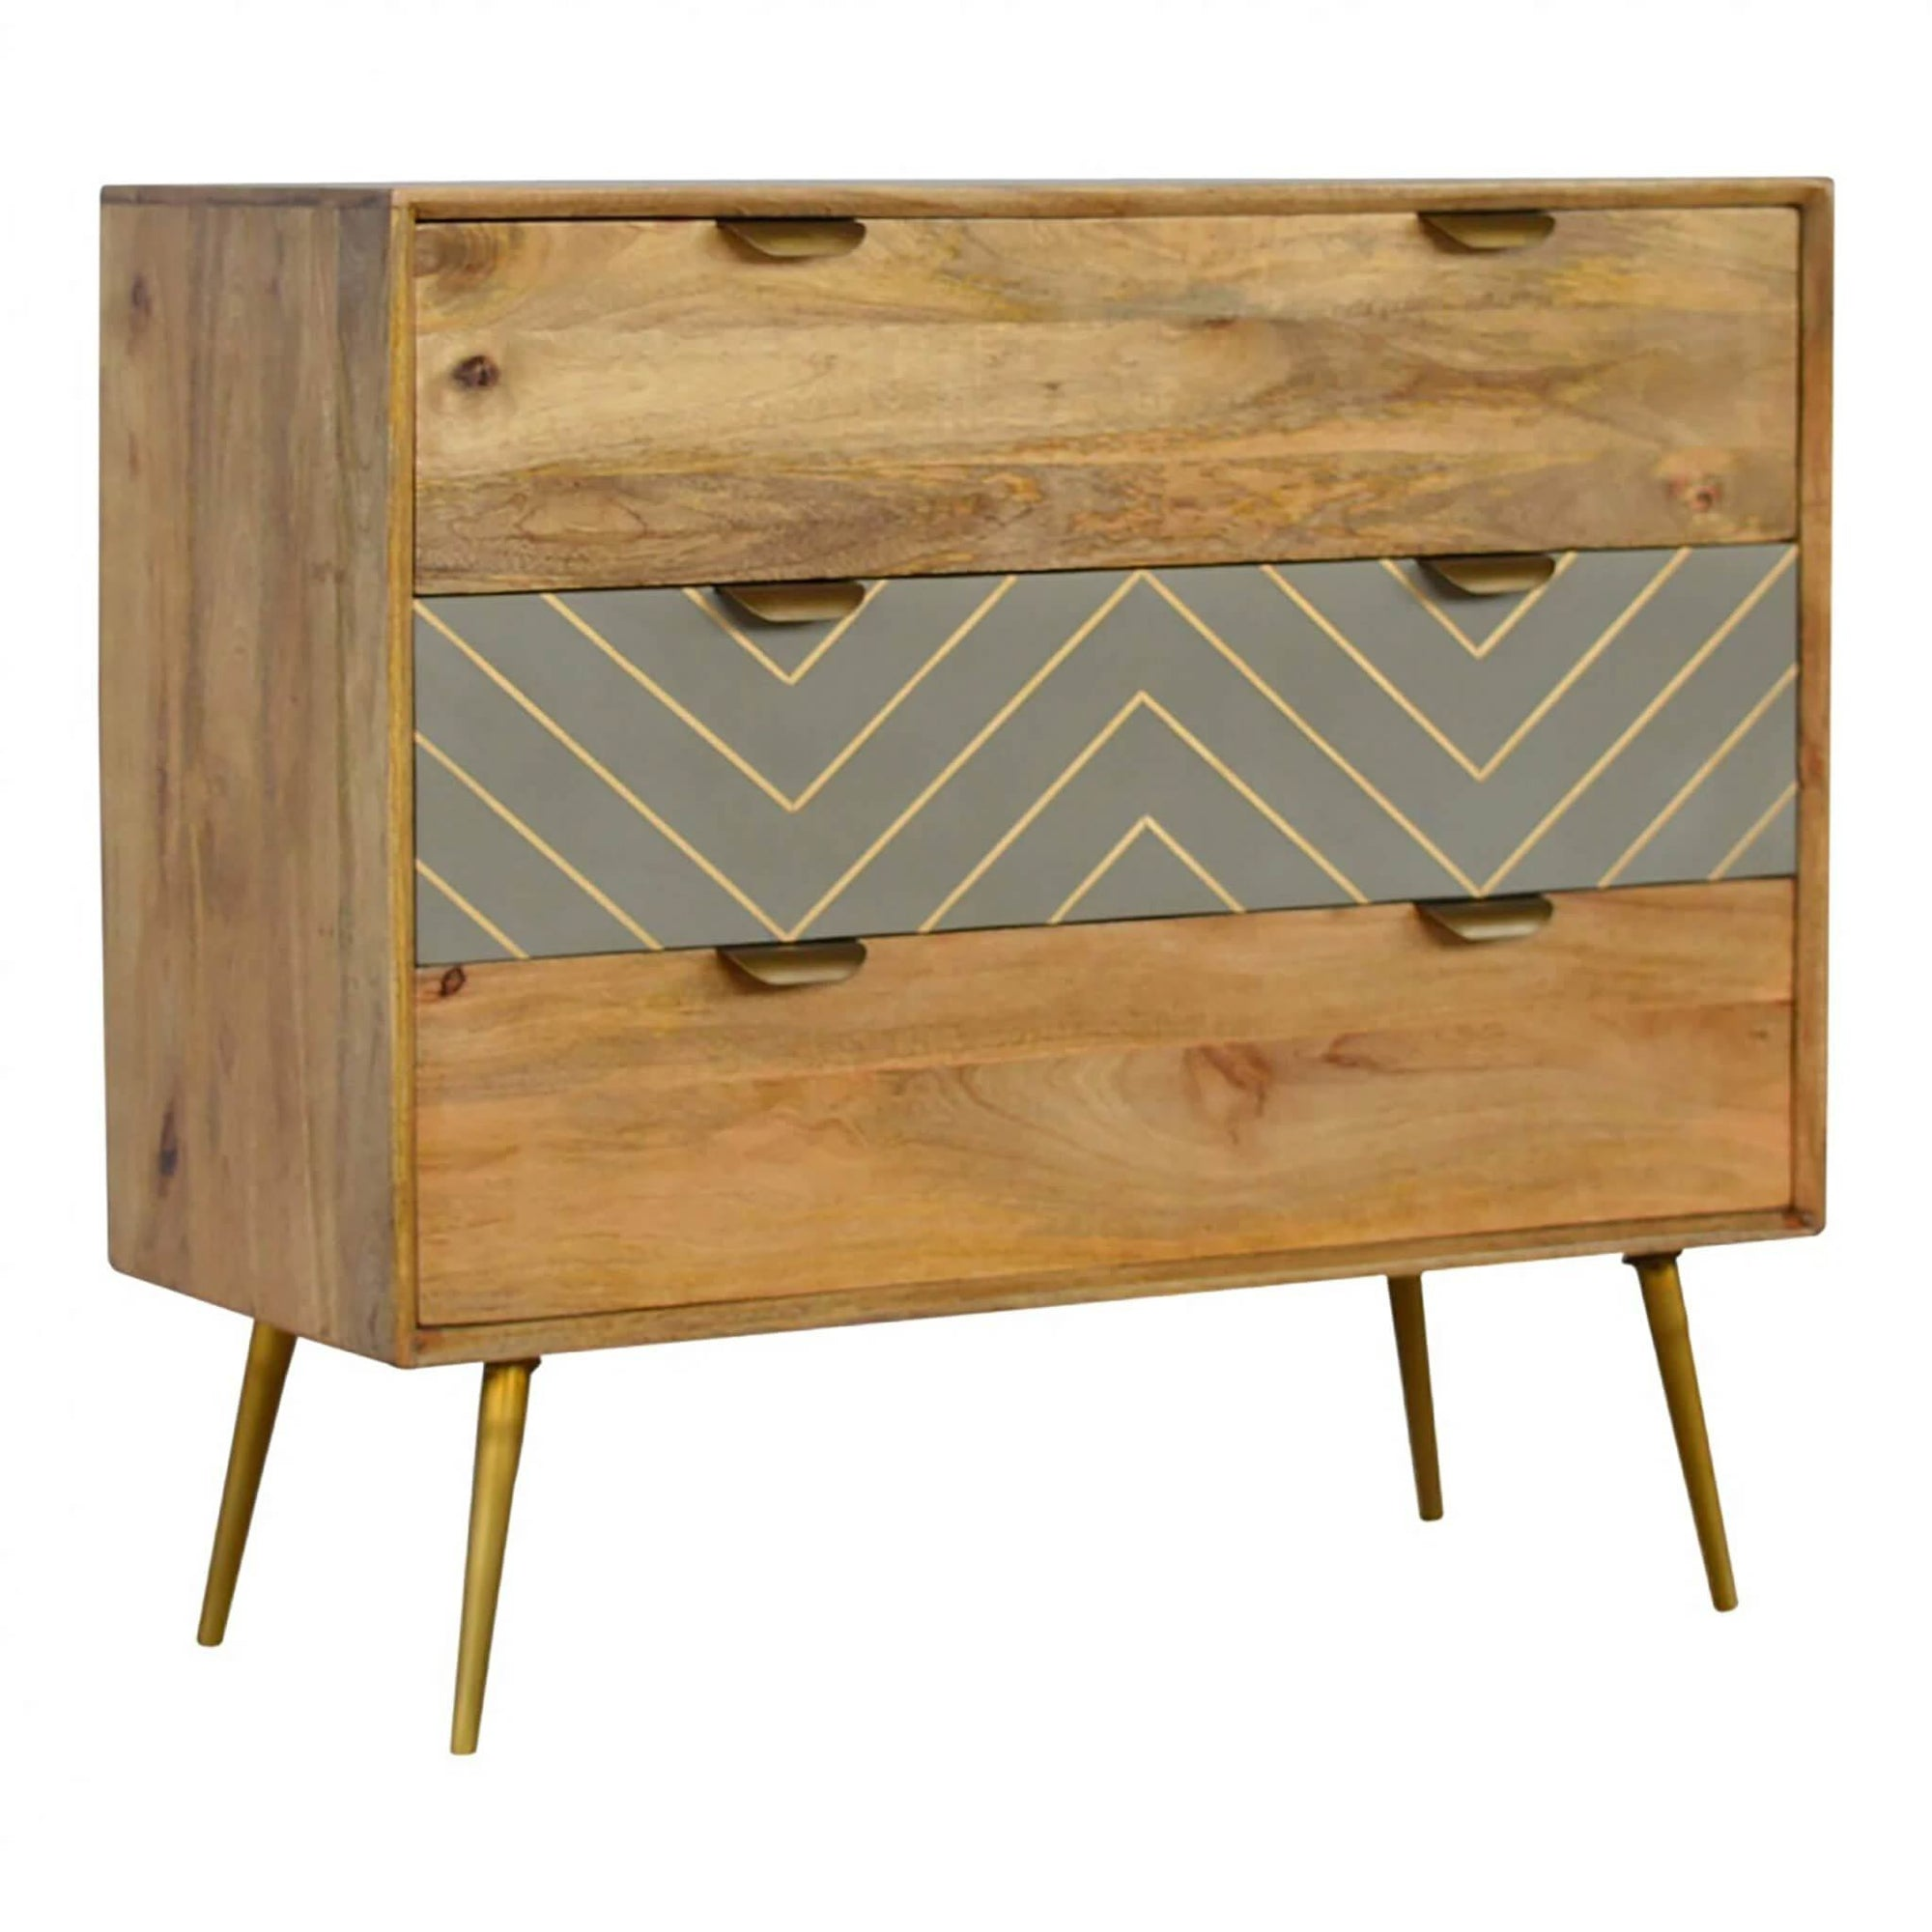 Artisan 3 Drawer Nordic Style Chest of Drawers with Brass Inlay by Roseland Furniture